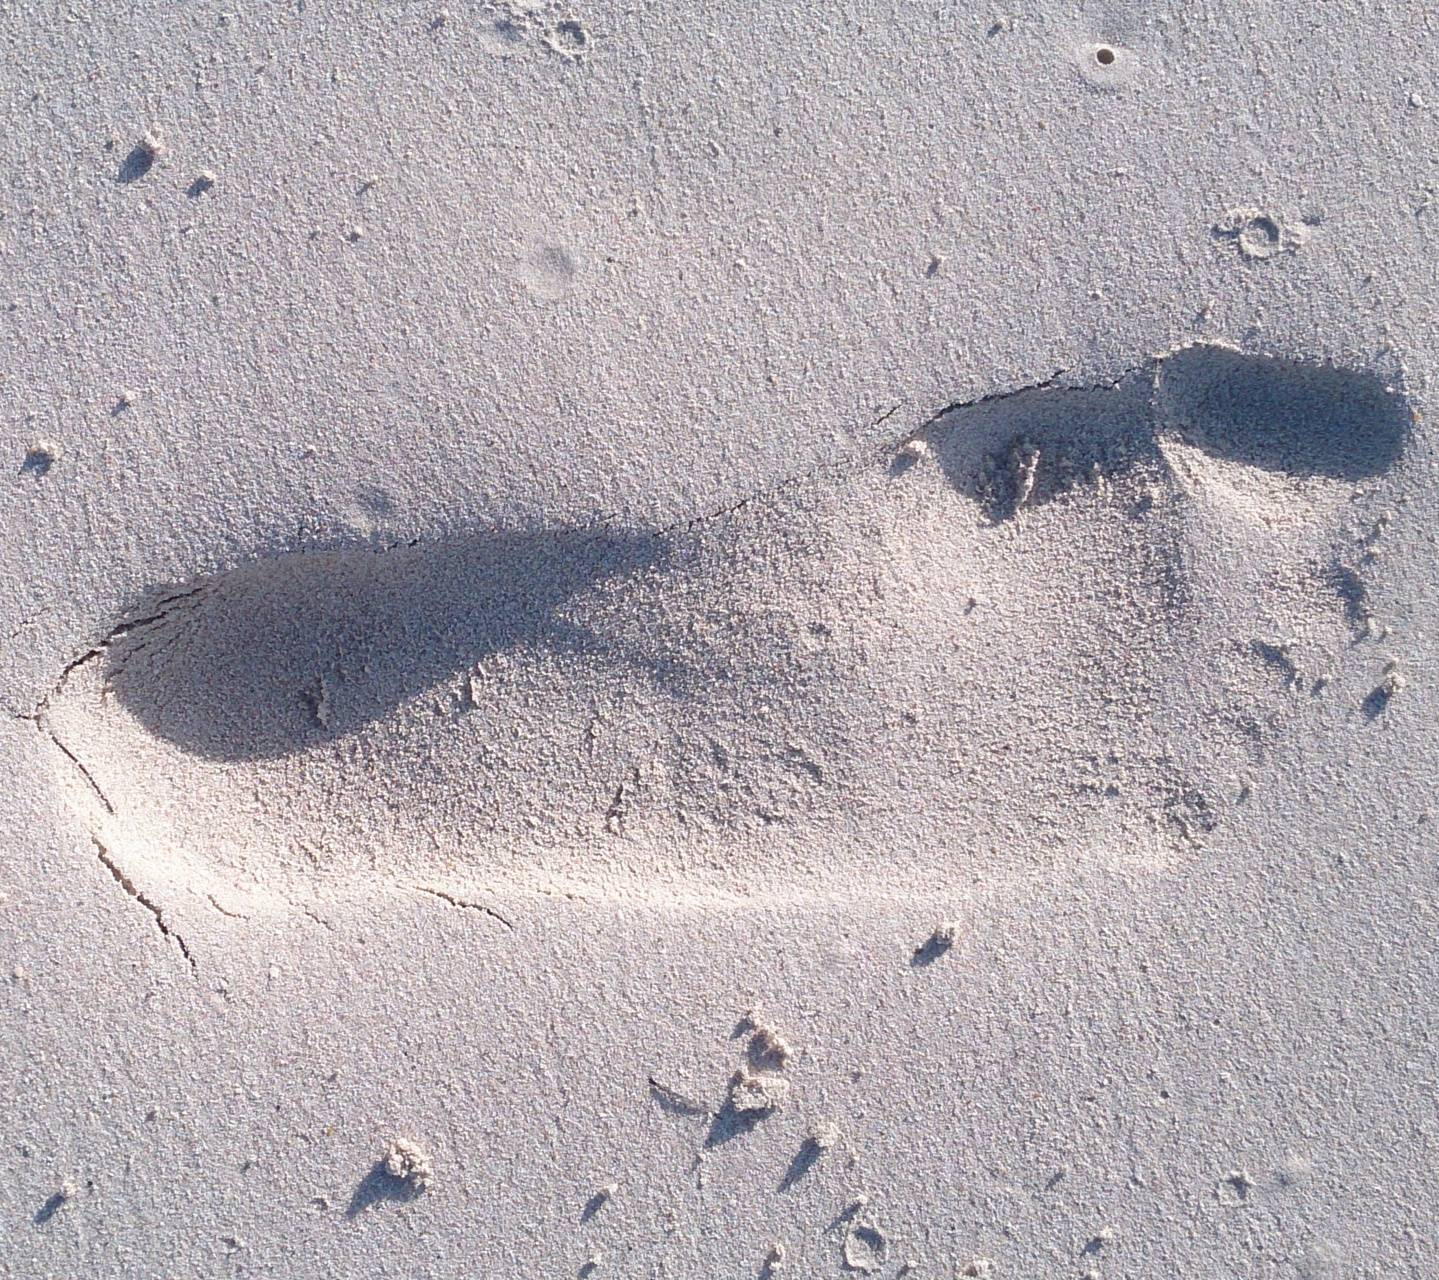 a foot on the sand